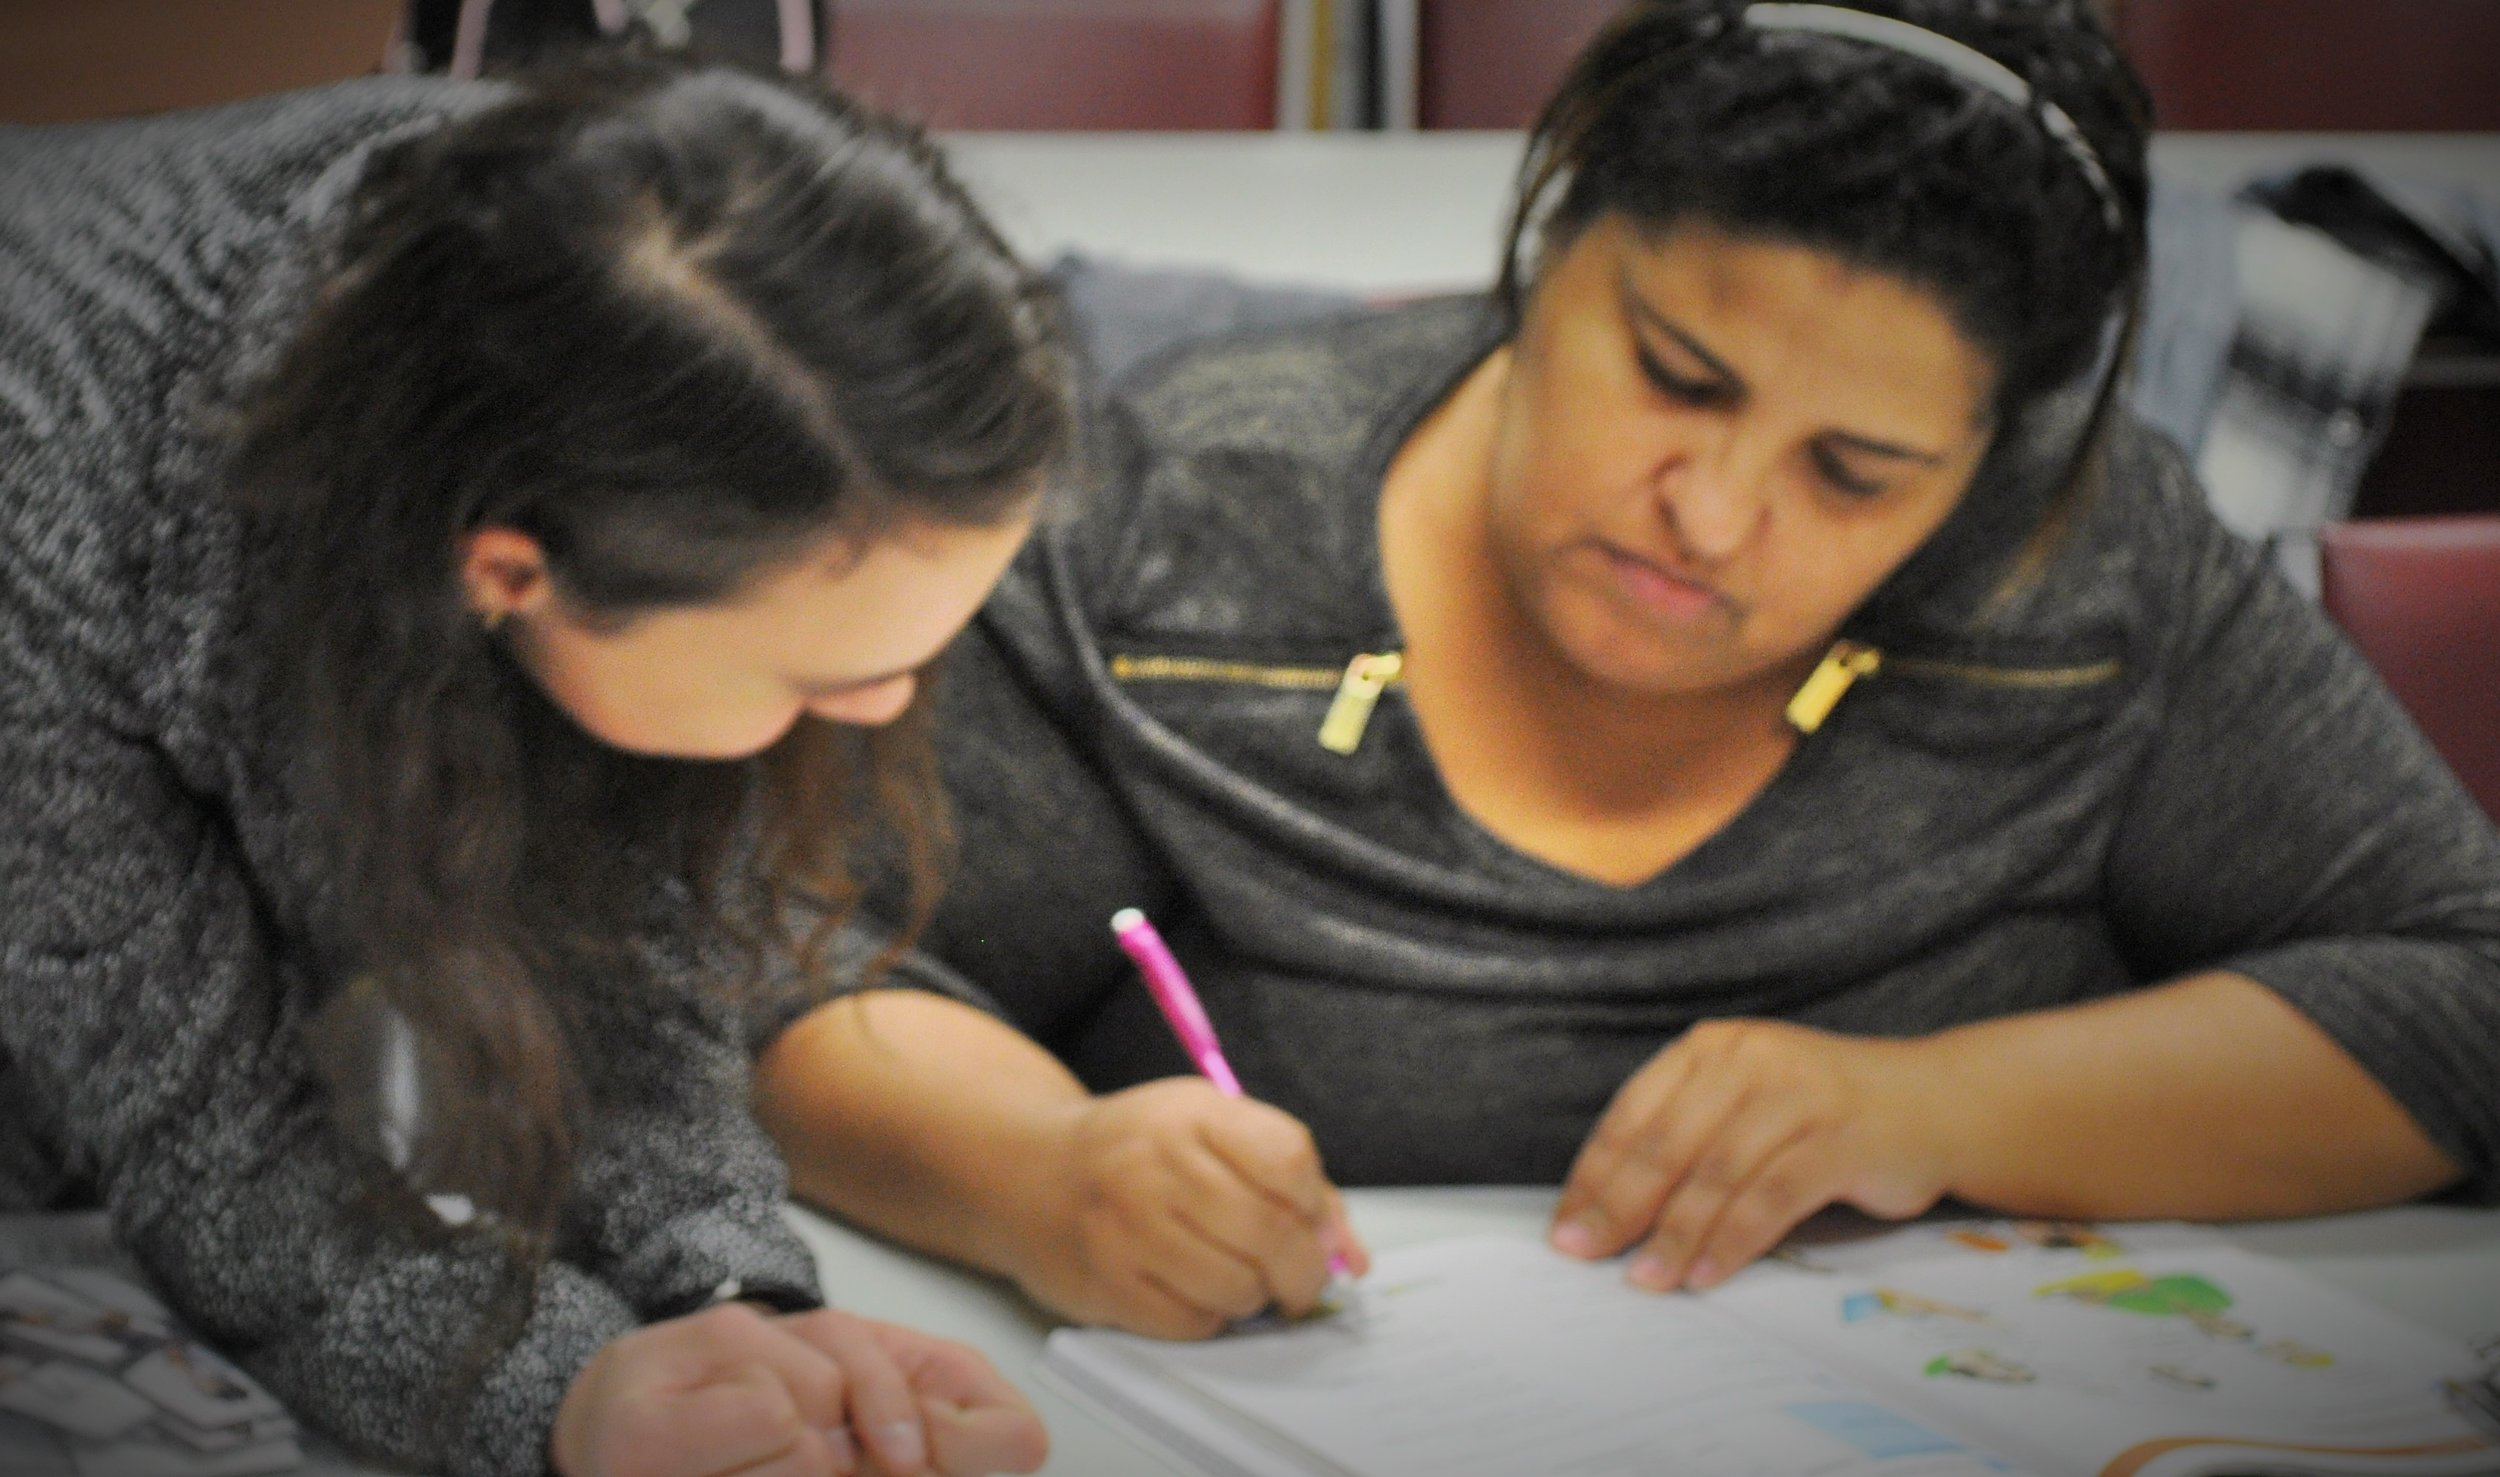 Life Together fellow Hannah Field works with an ESOL student during class. Photo by Elizabeth Kholer.